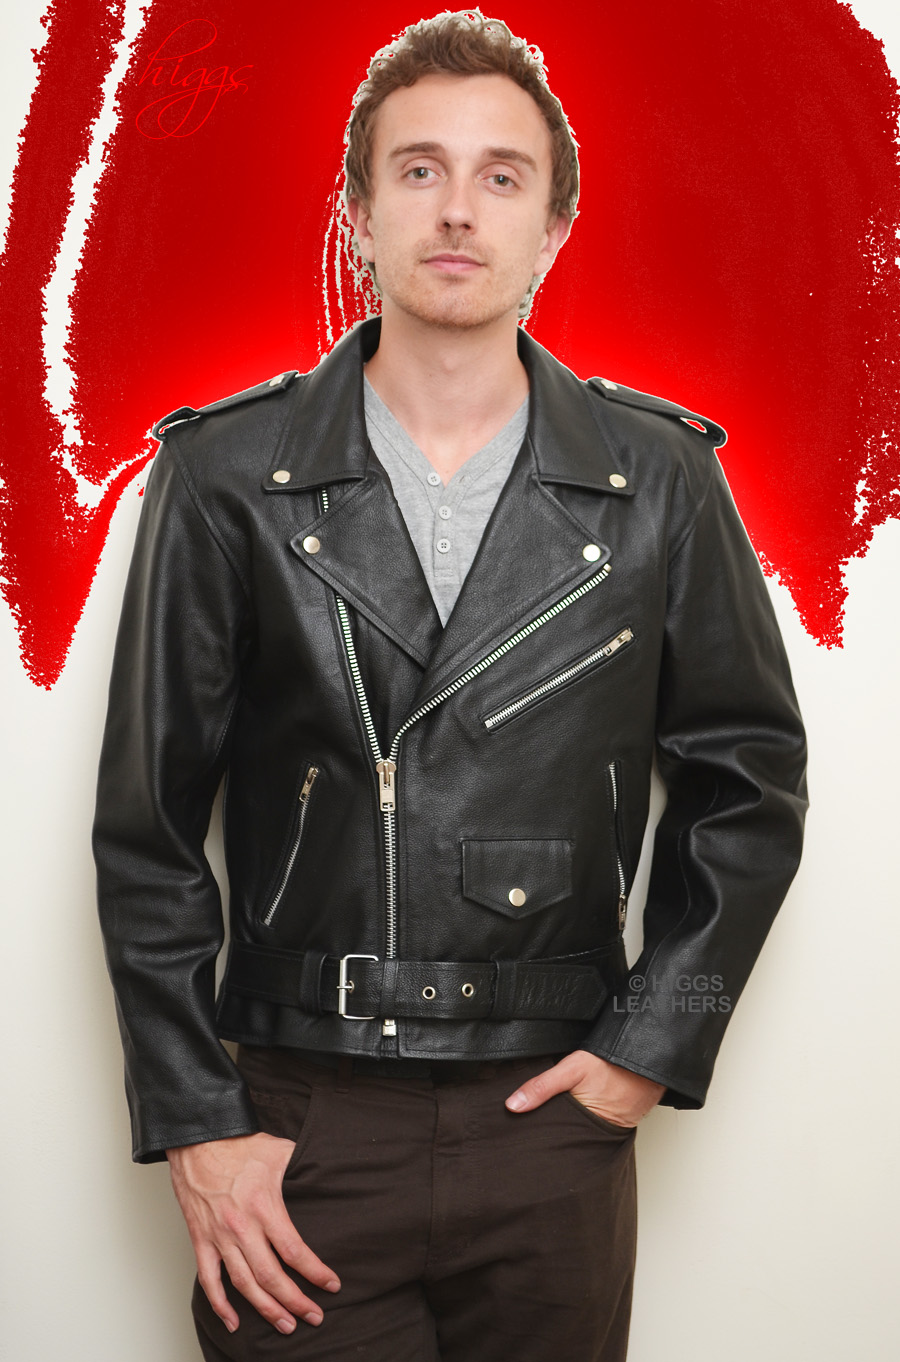 Higgs Leathers {NEW STOCK!}  Brando (motorcycle Black Leather jacket for men) INCREDIBLE VALUE!